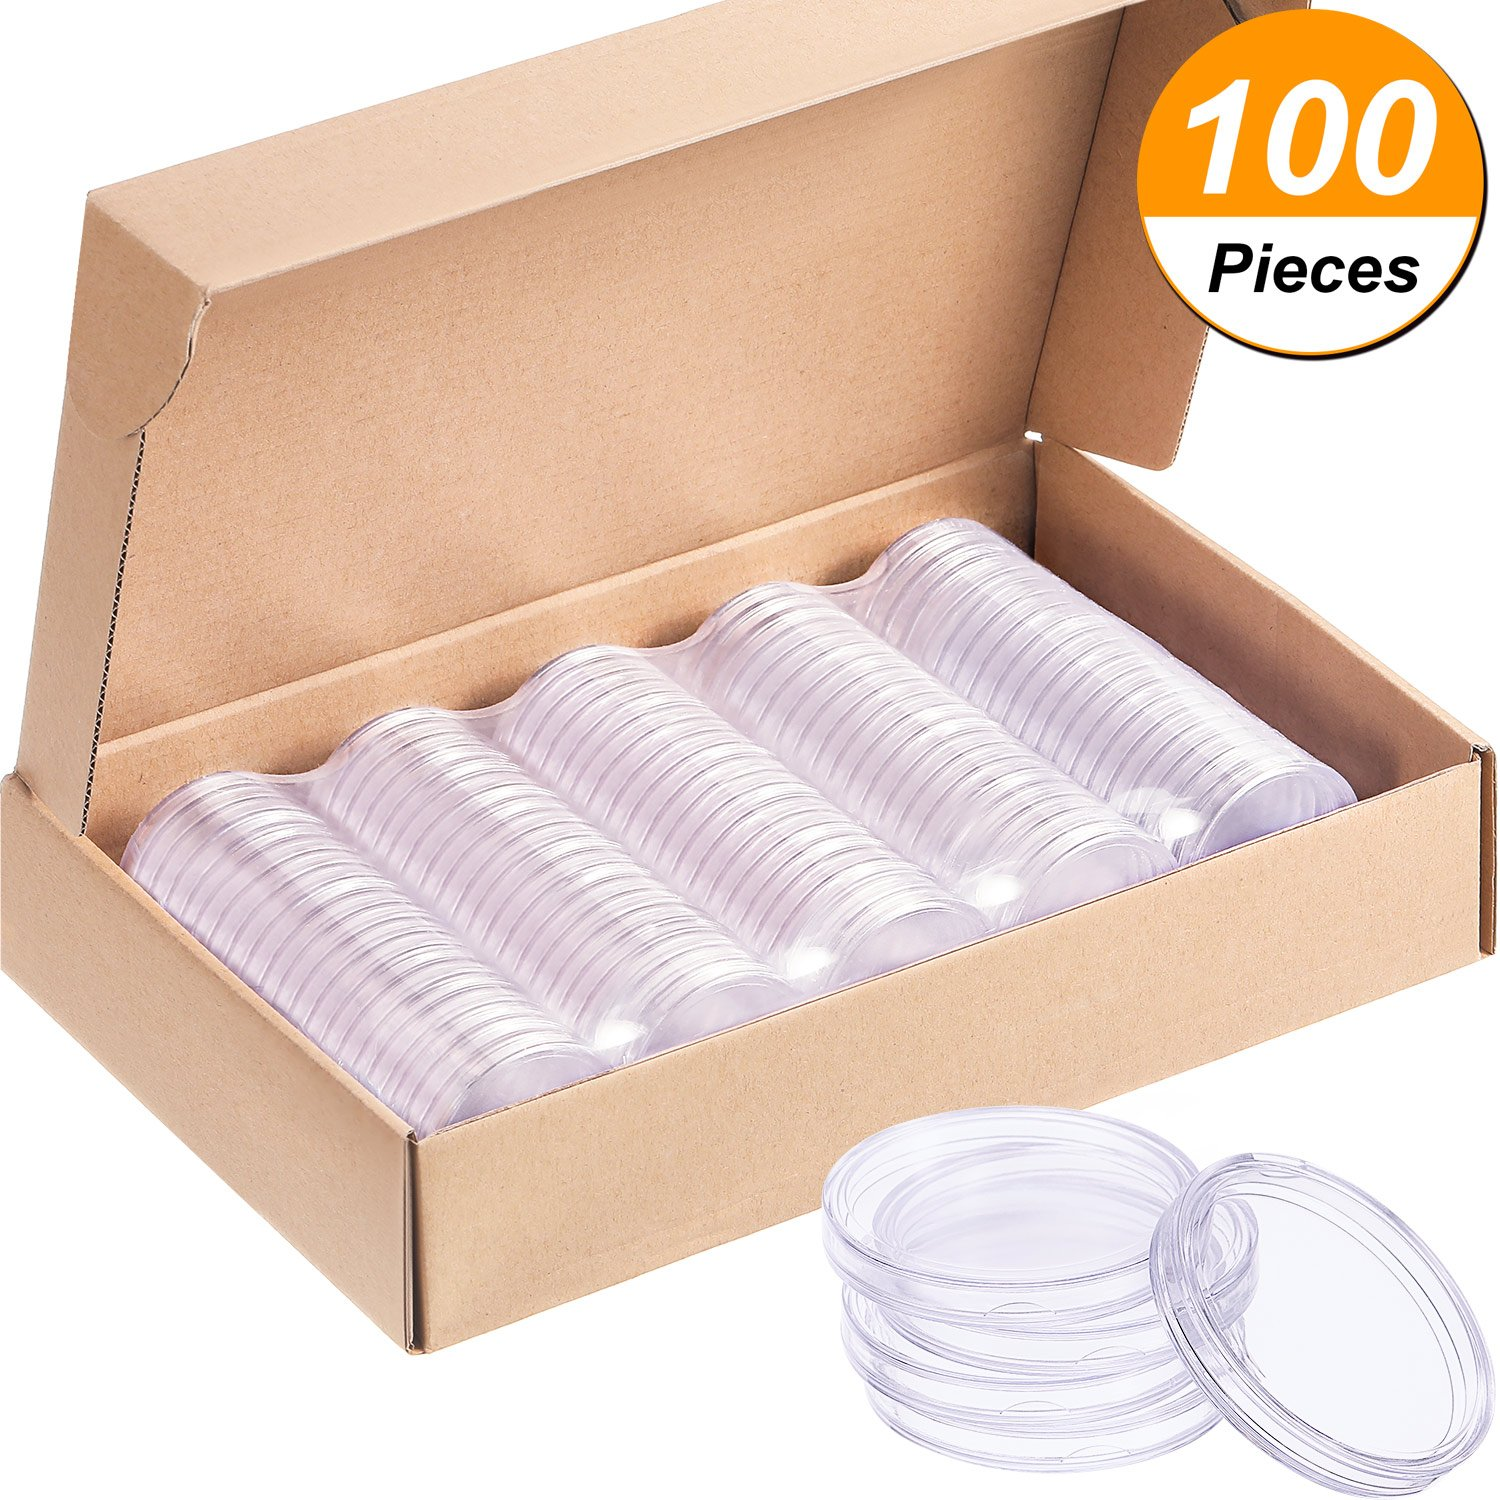 Hicarer 100 Pieces Coin Capsules Round Coin Holder Plastic Coin Container Case for Coin Collection Supplies with Paper Box (40 mm)